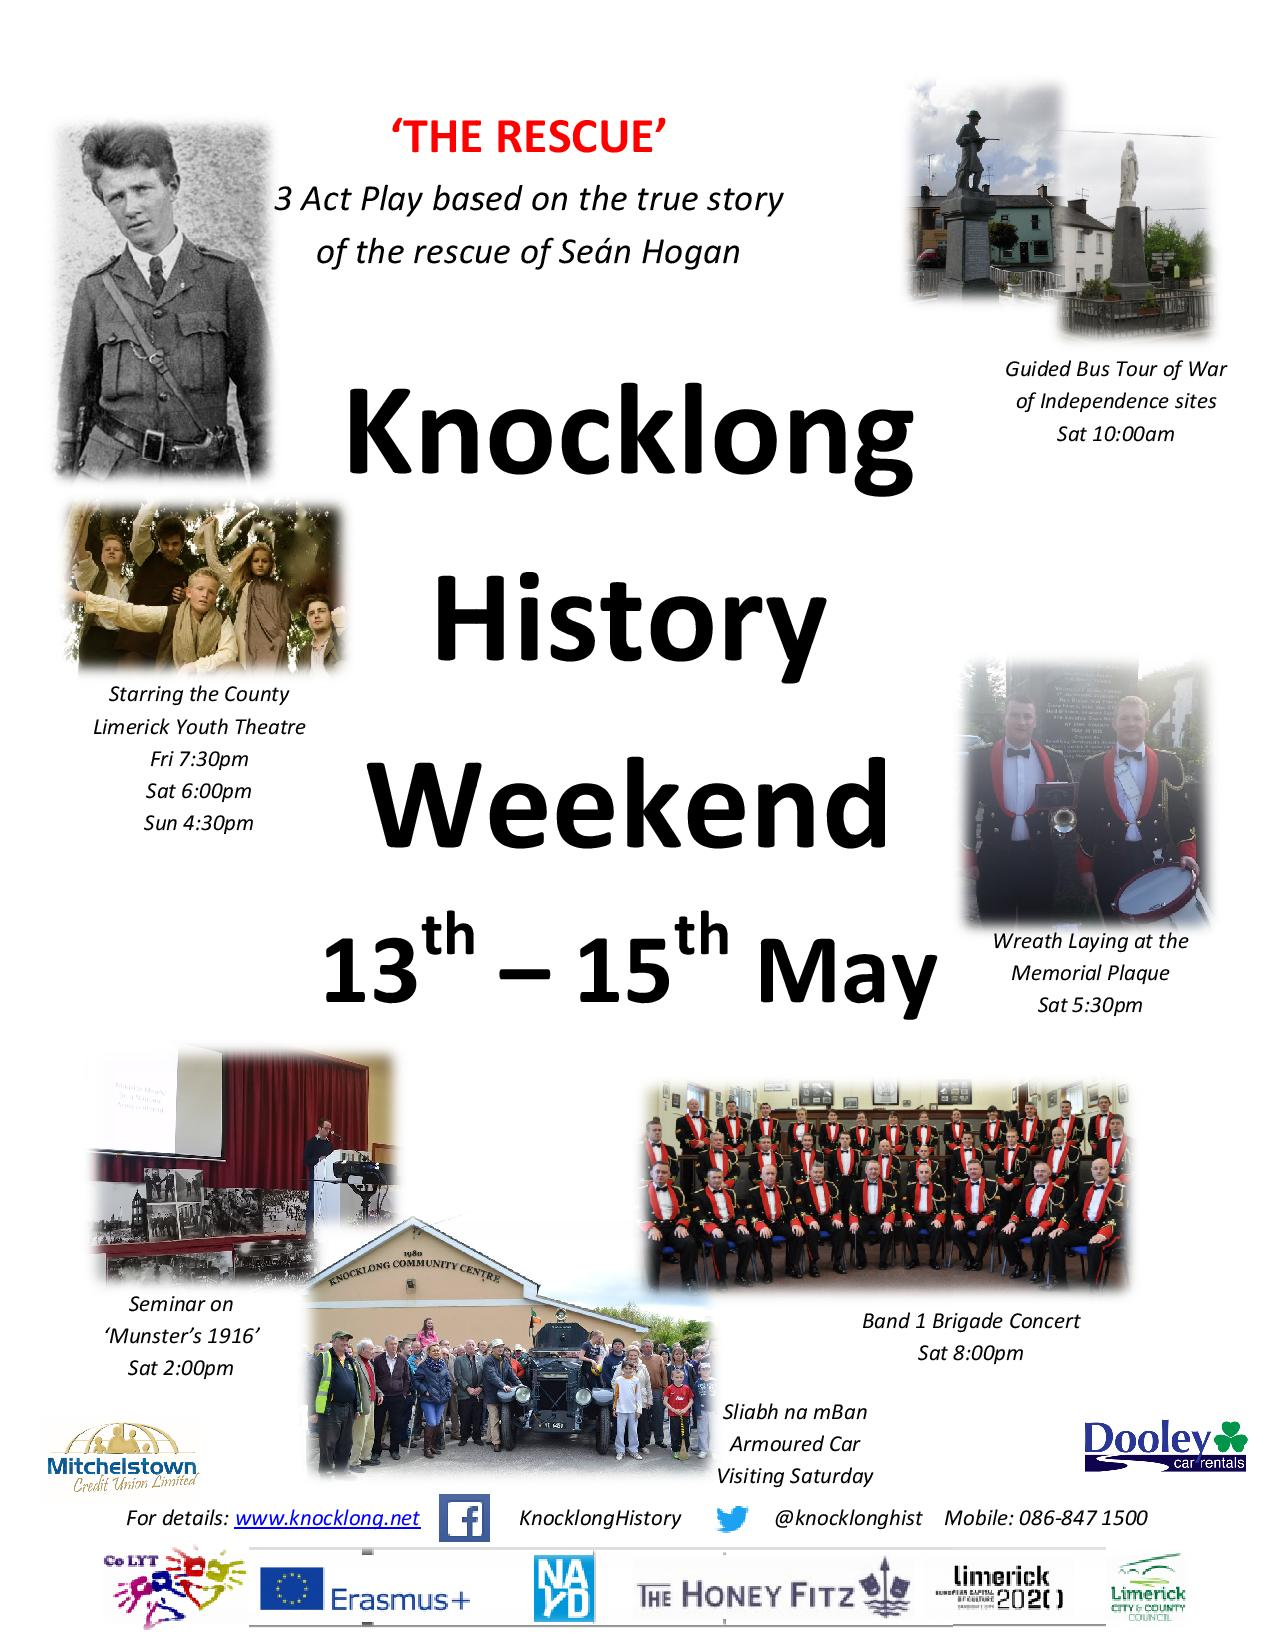 Knocklong%20History%20Weekend%20poster%20final-page-001